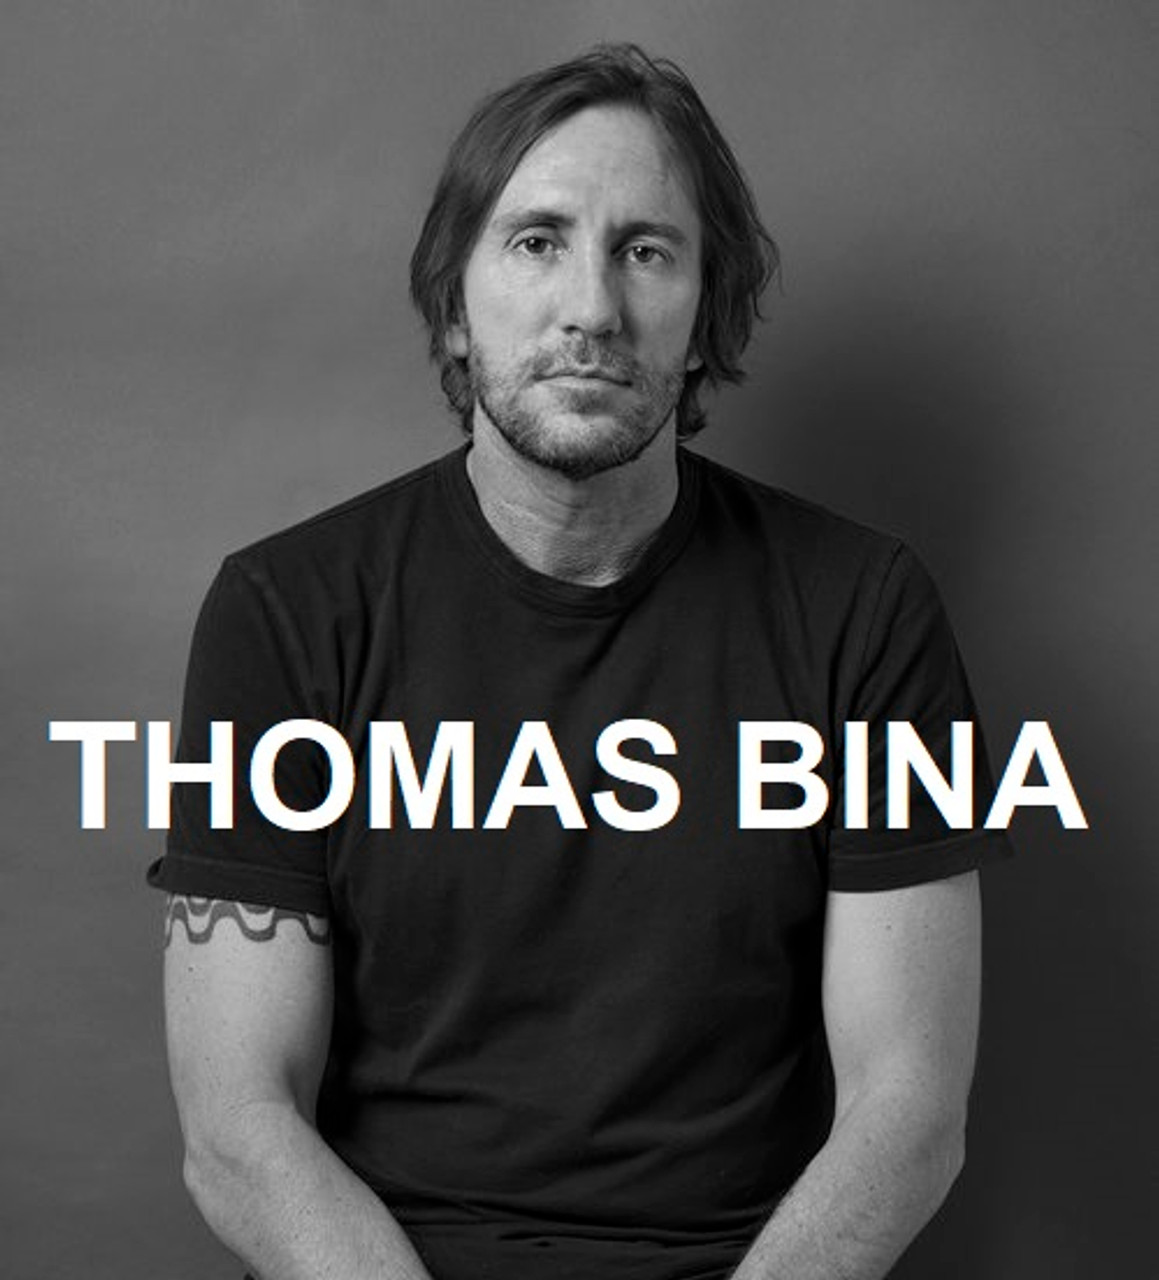 What You Need to Know About Designer Thomas Bina